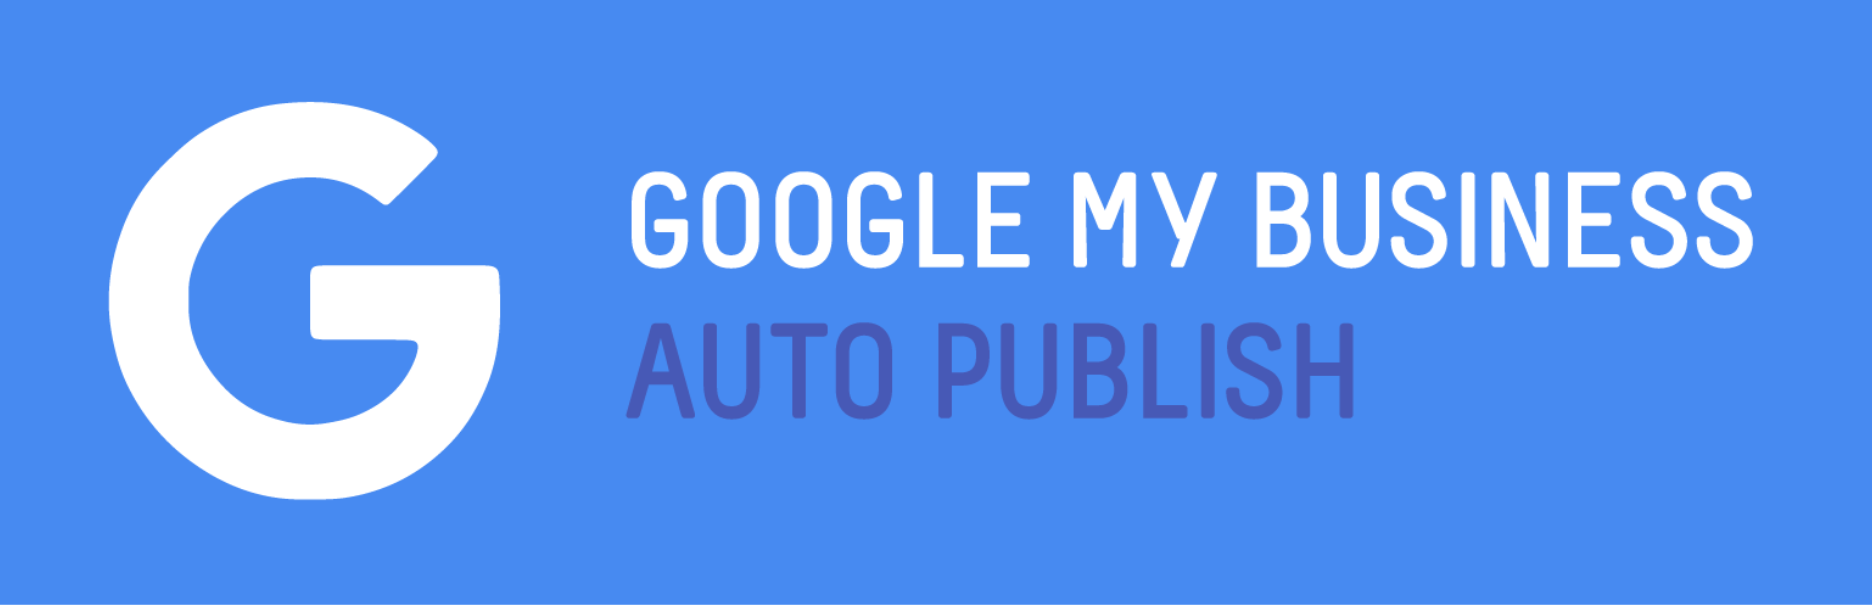 Google My Business Autopublish